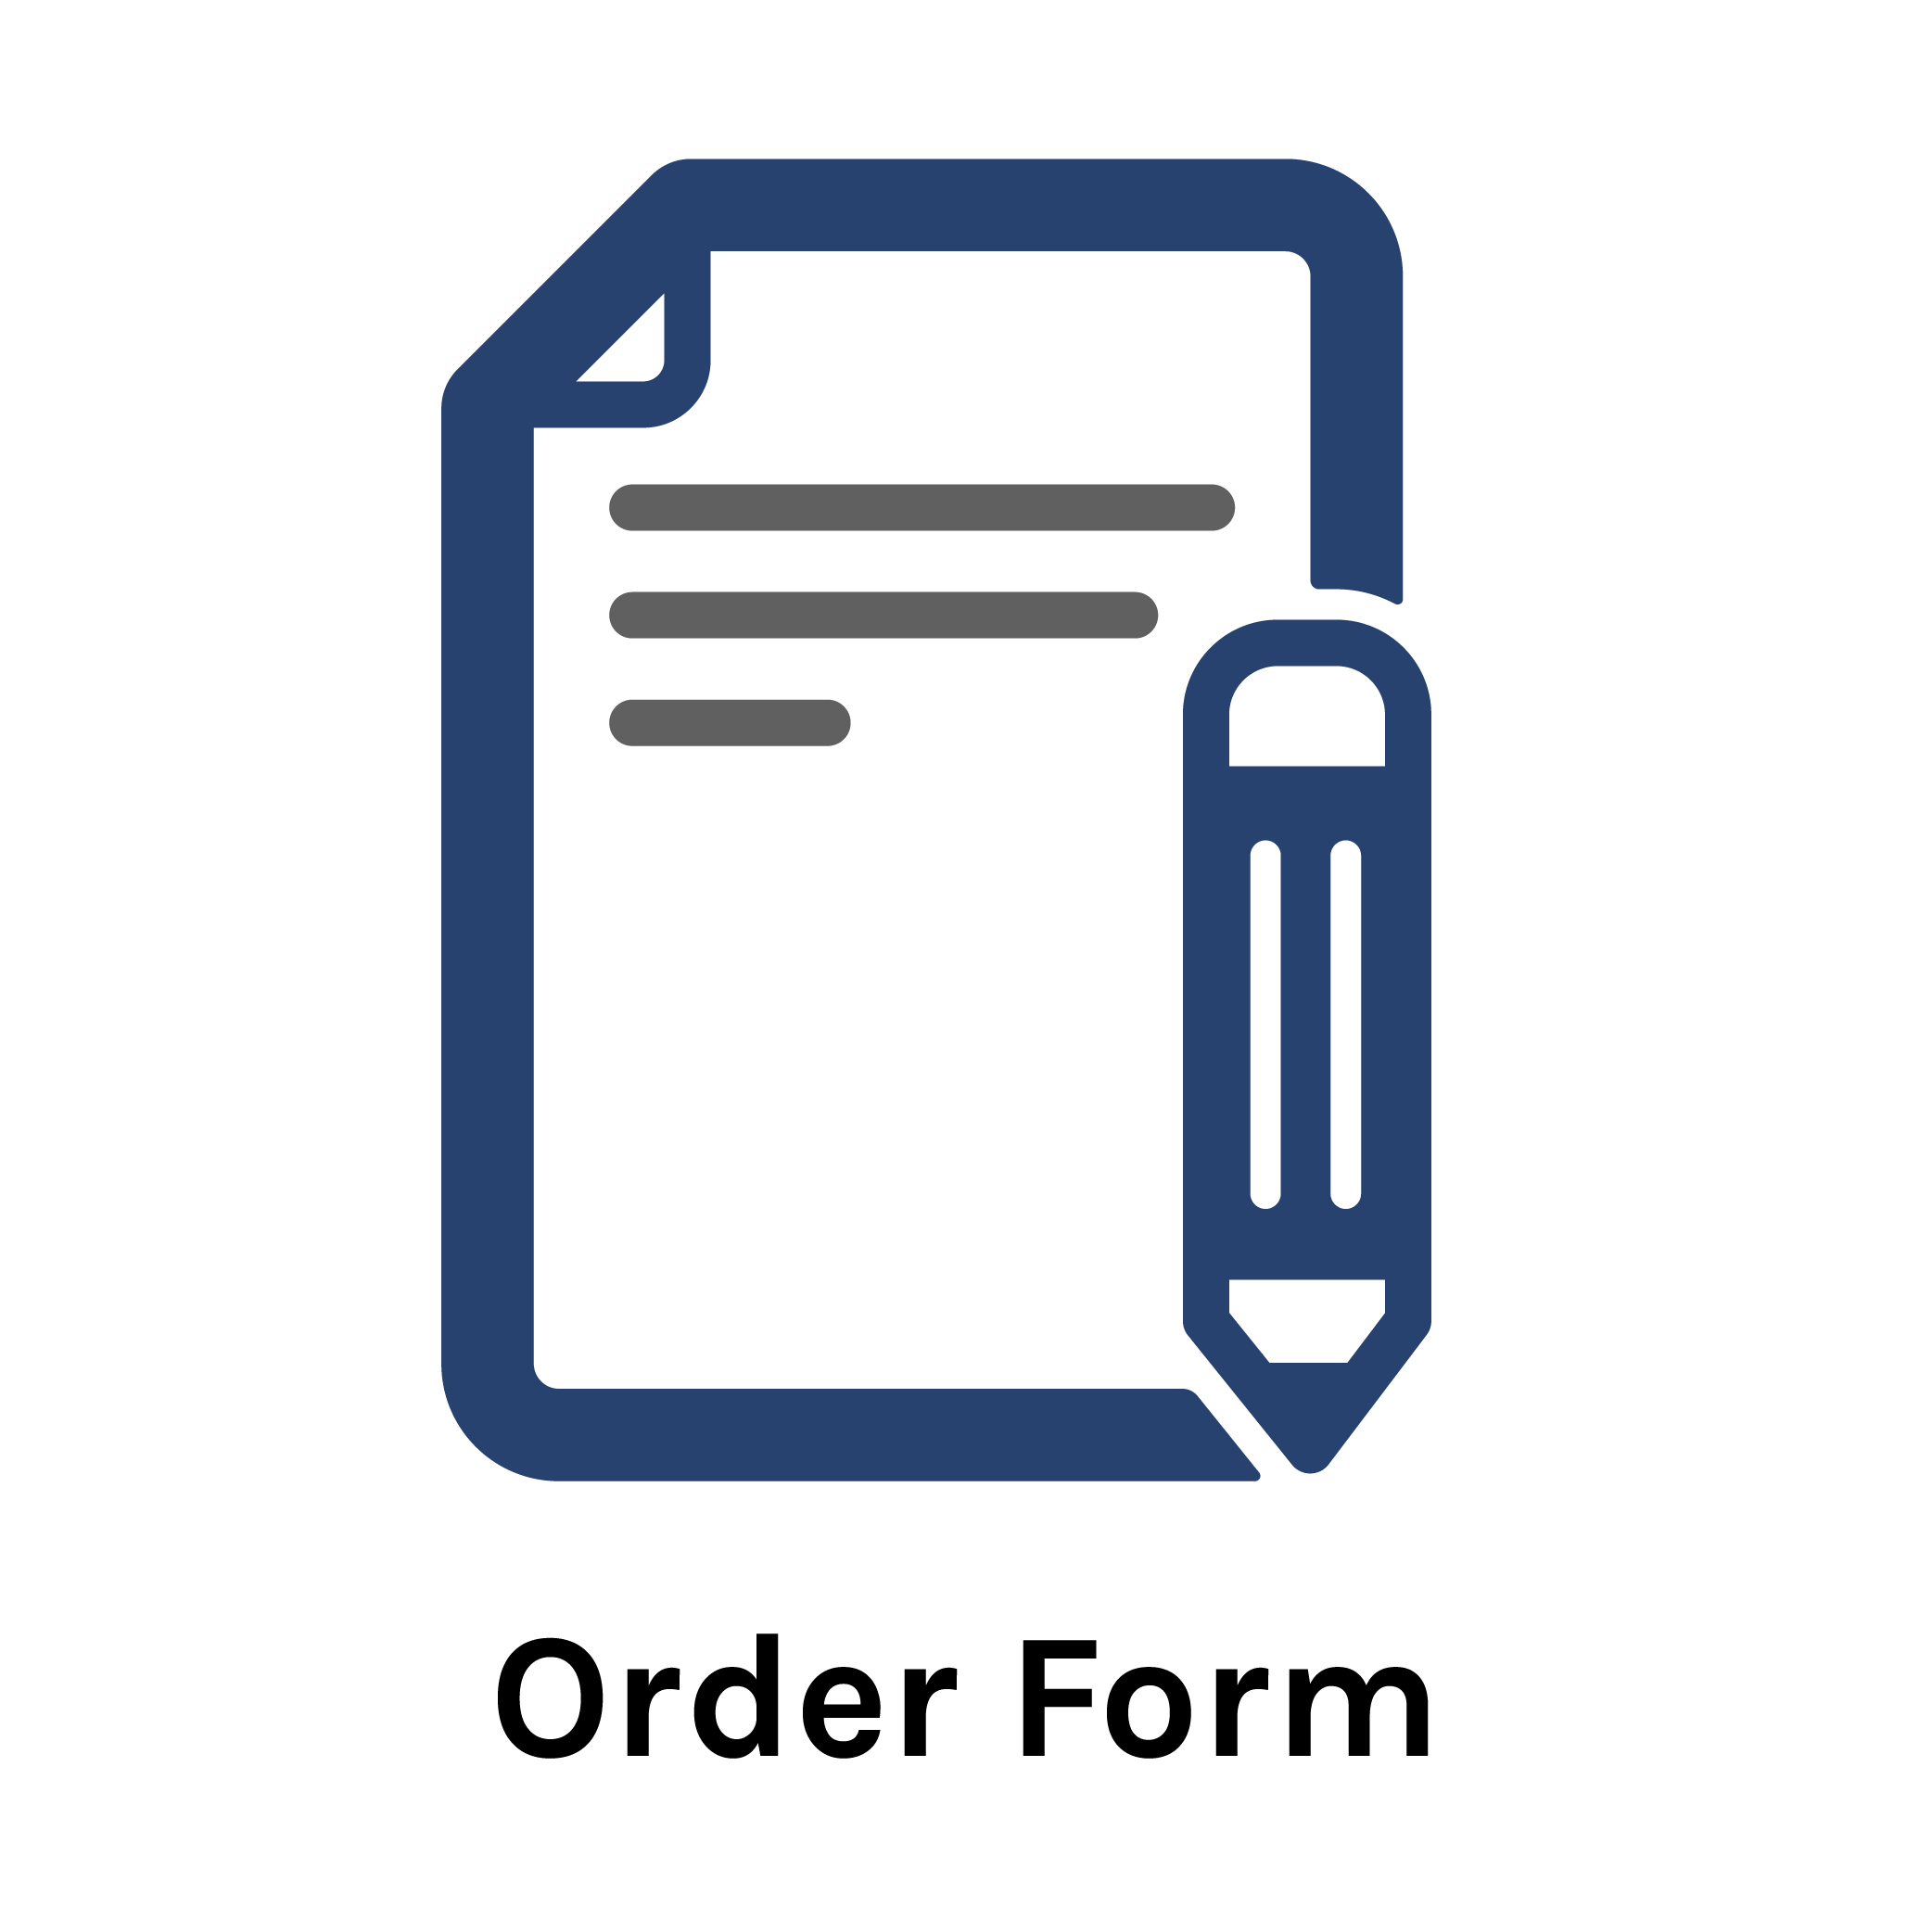 new-website-icons-2021-orderform.png